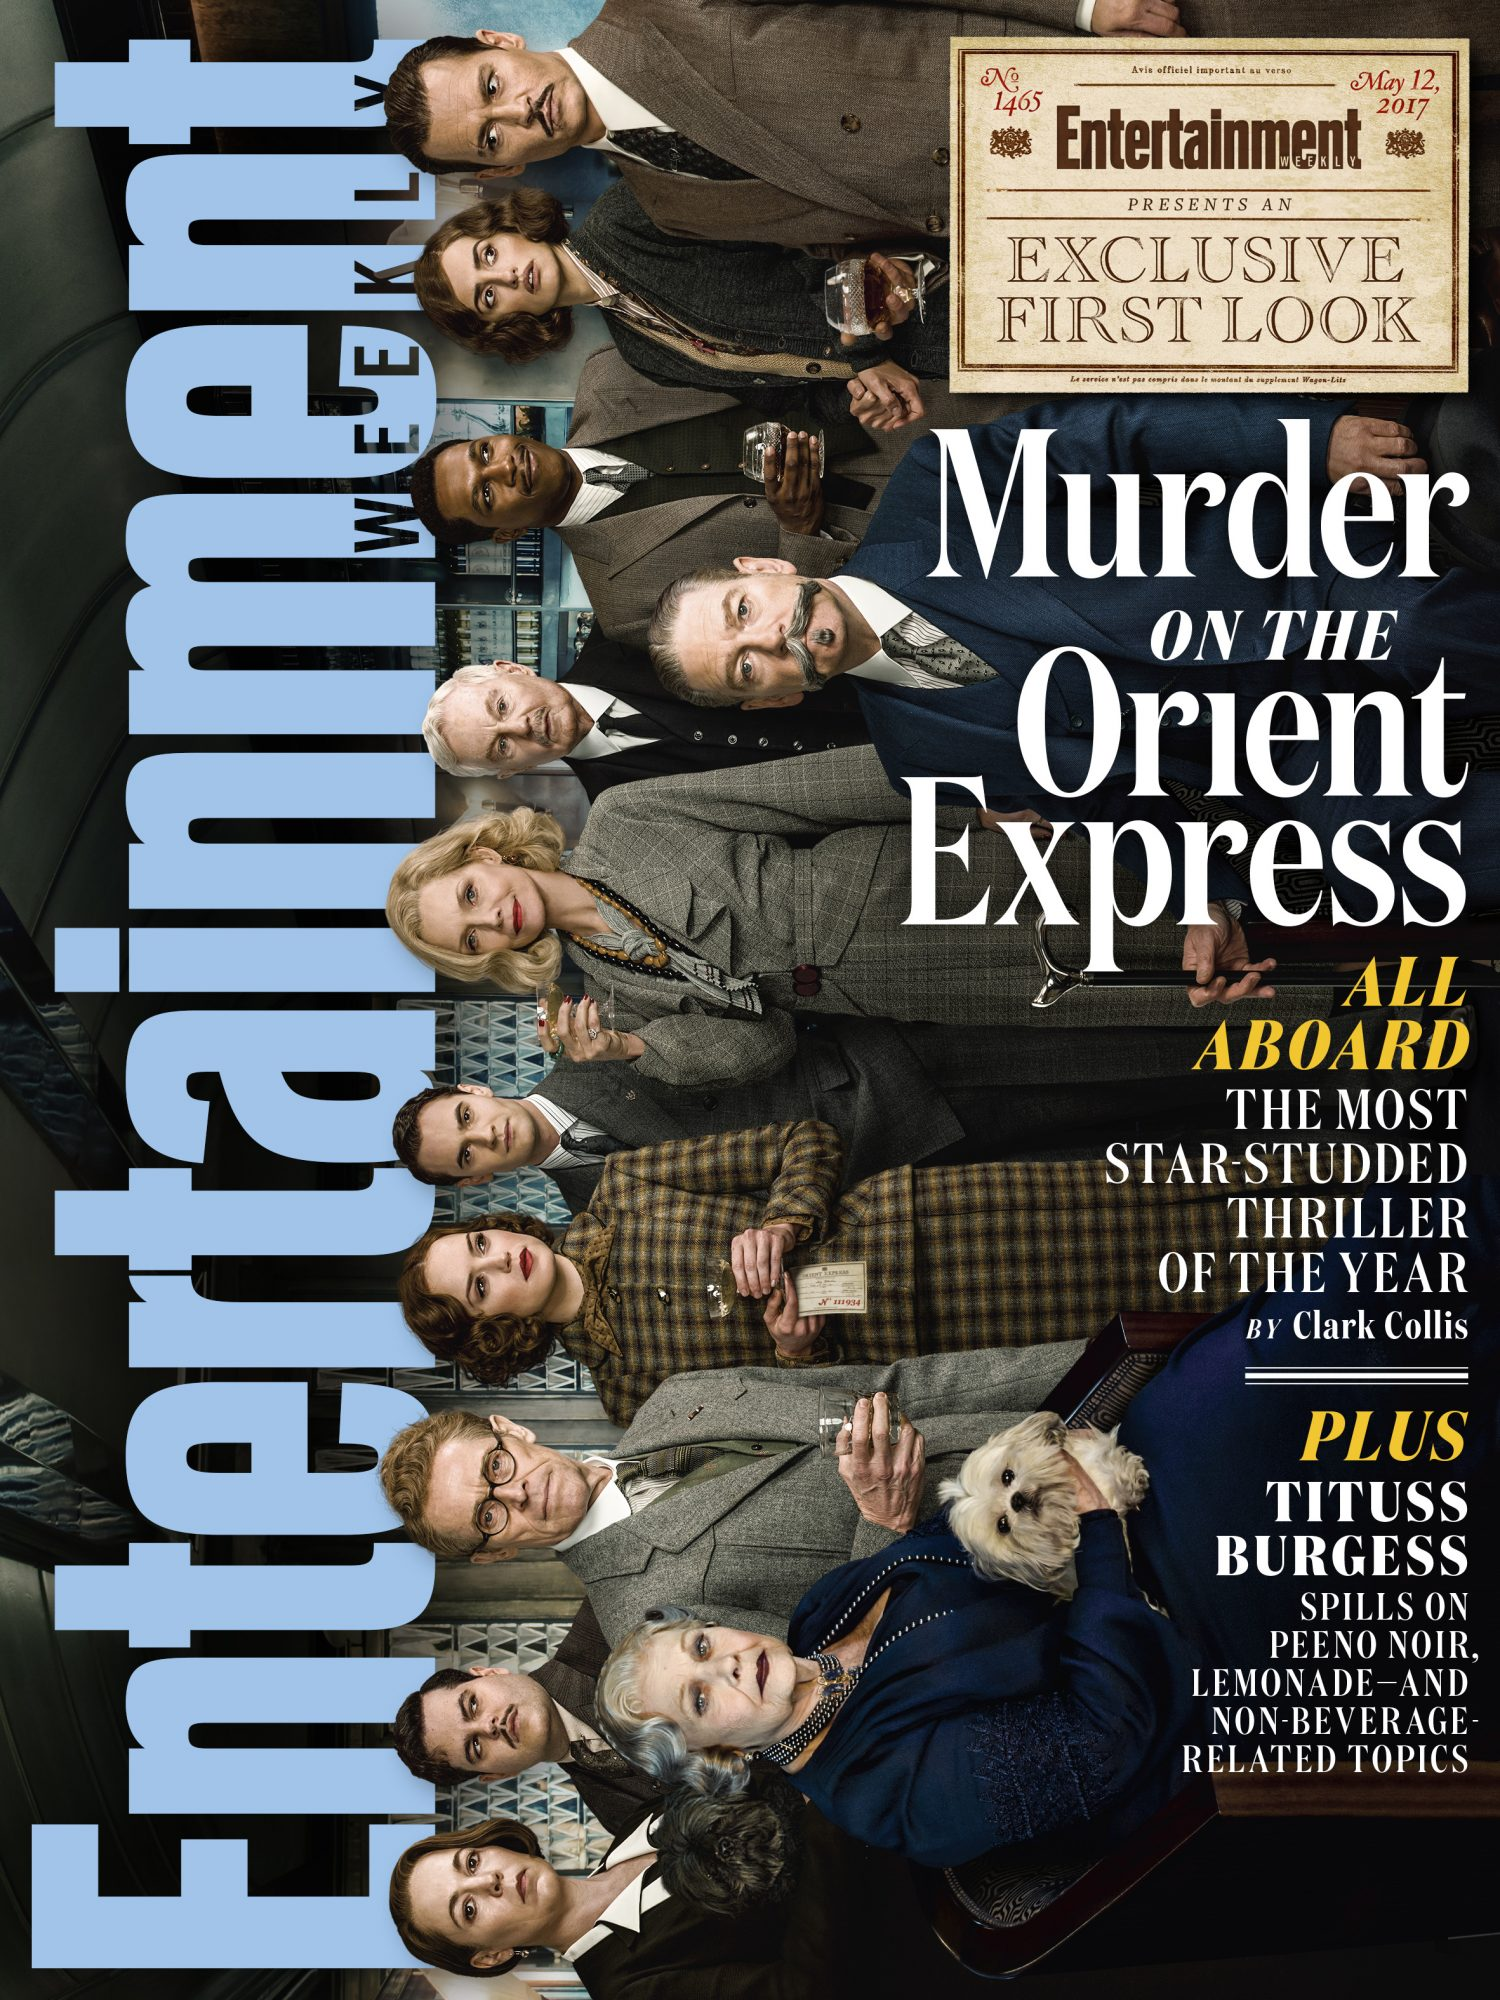 Entertainment Weekly Cover - Murder on the orient express